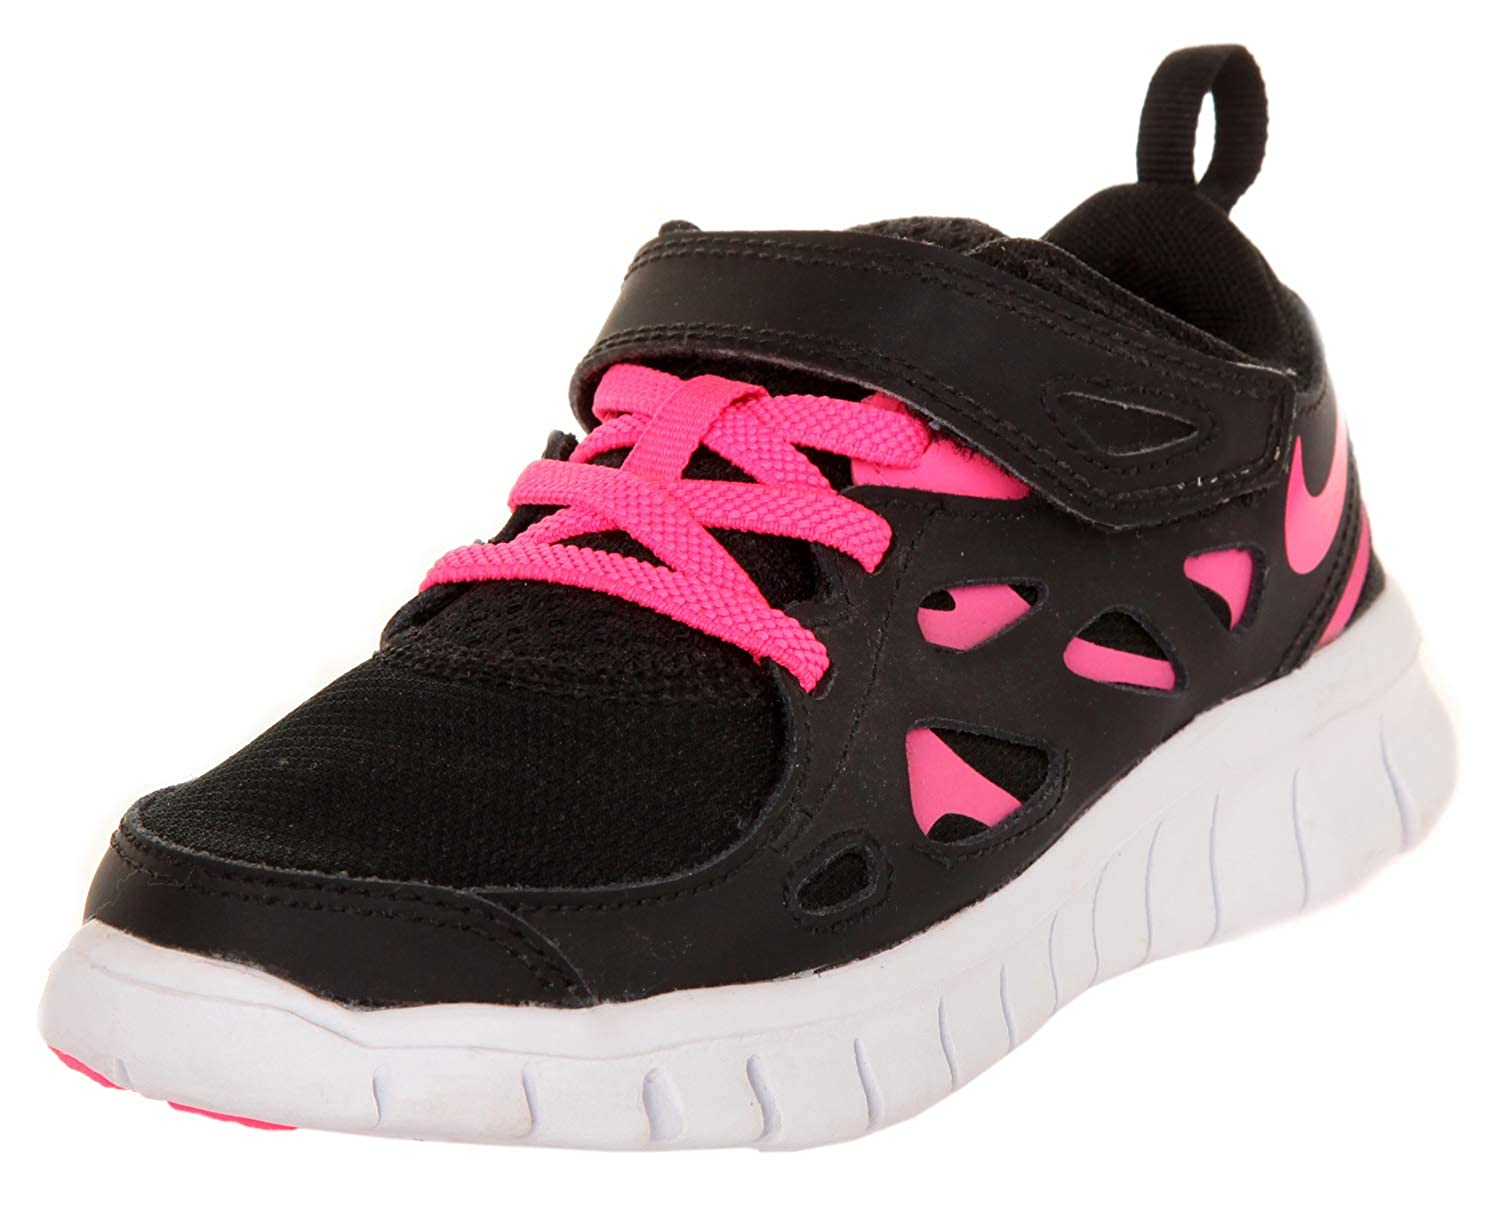 official photos 8f9e0 98a0f Nike Free Run 2 Black White Kids Trainers Size Kids 11.5 UK  Amazon.fr   Chaussures et Sacs